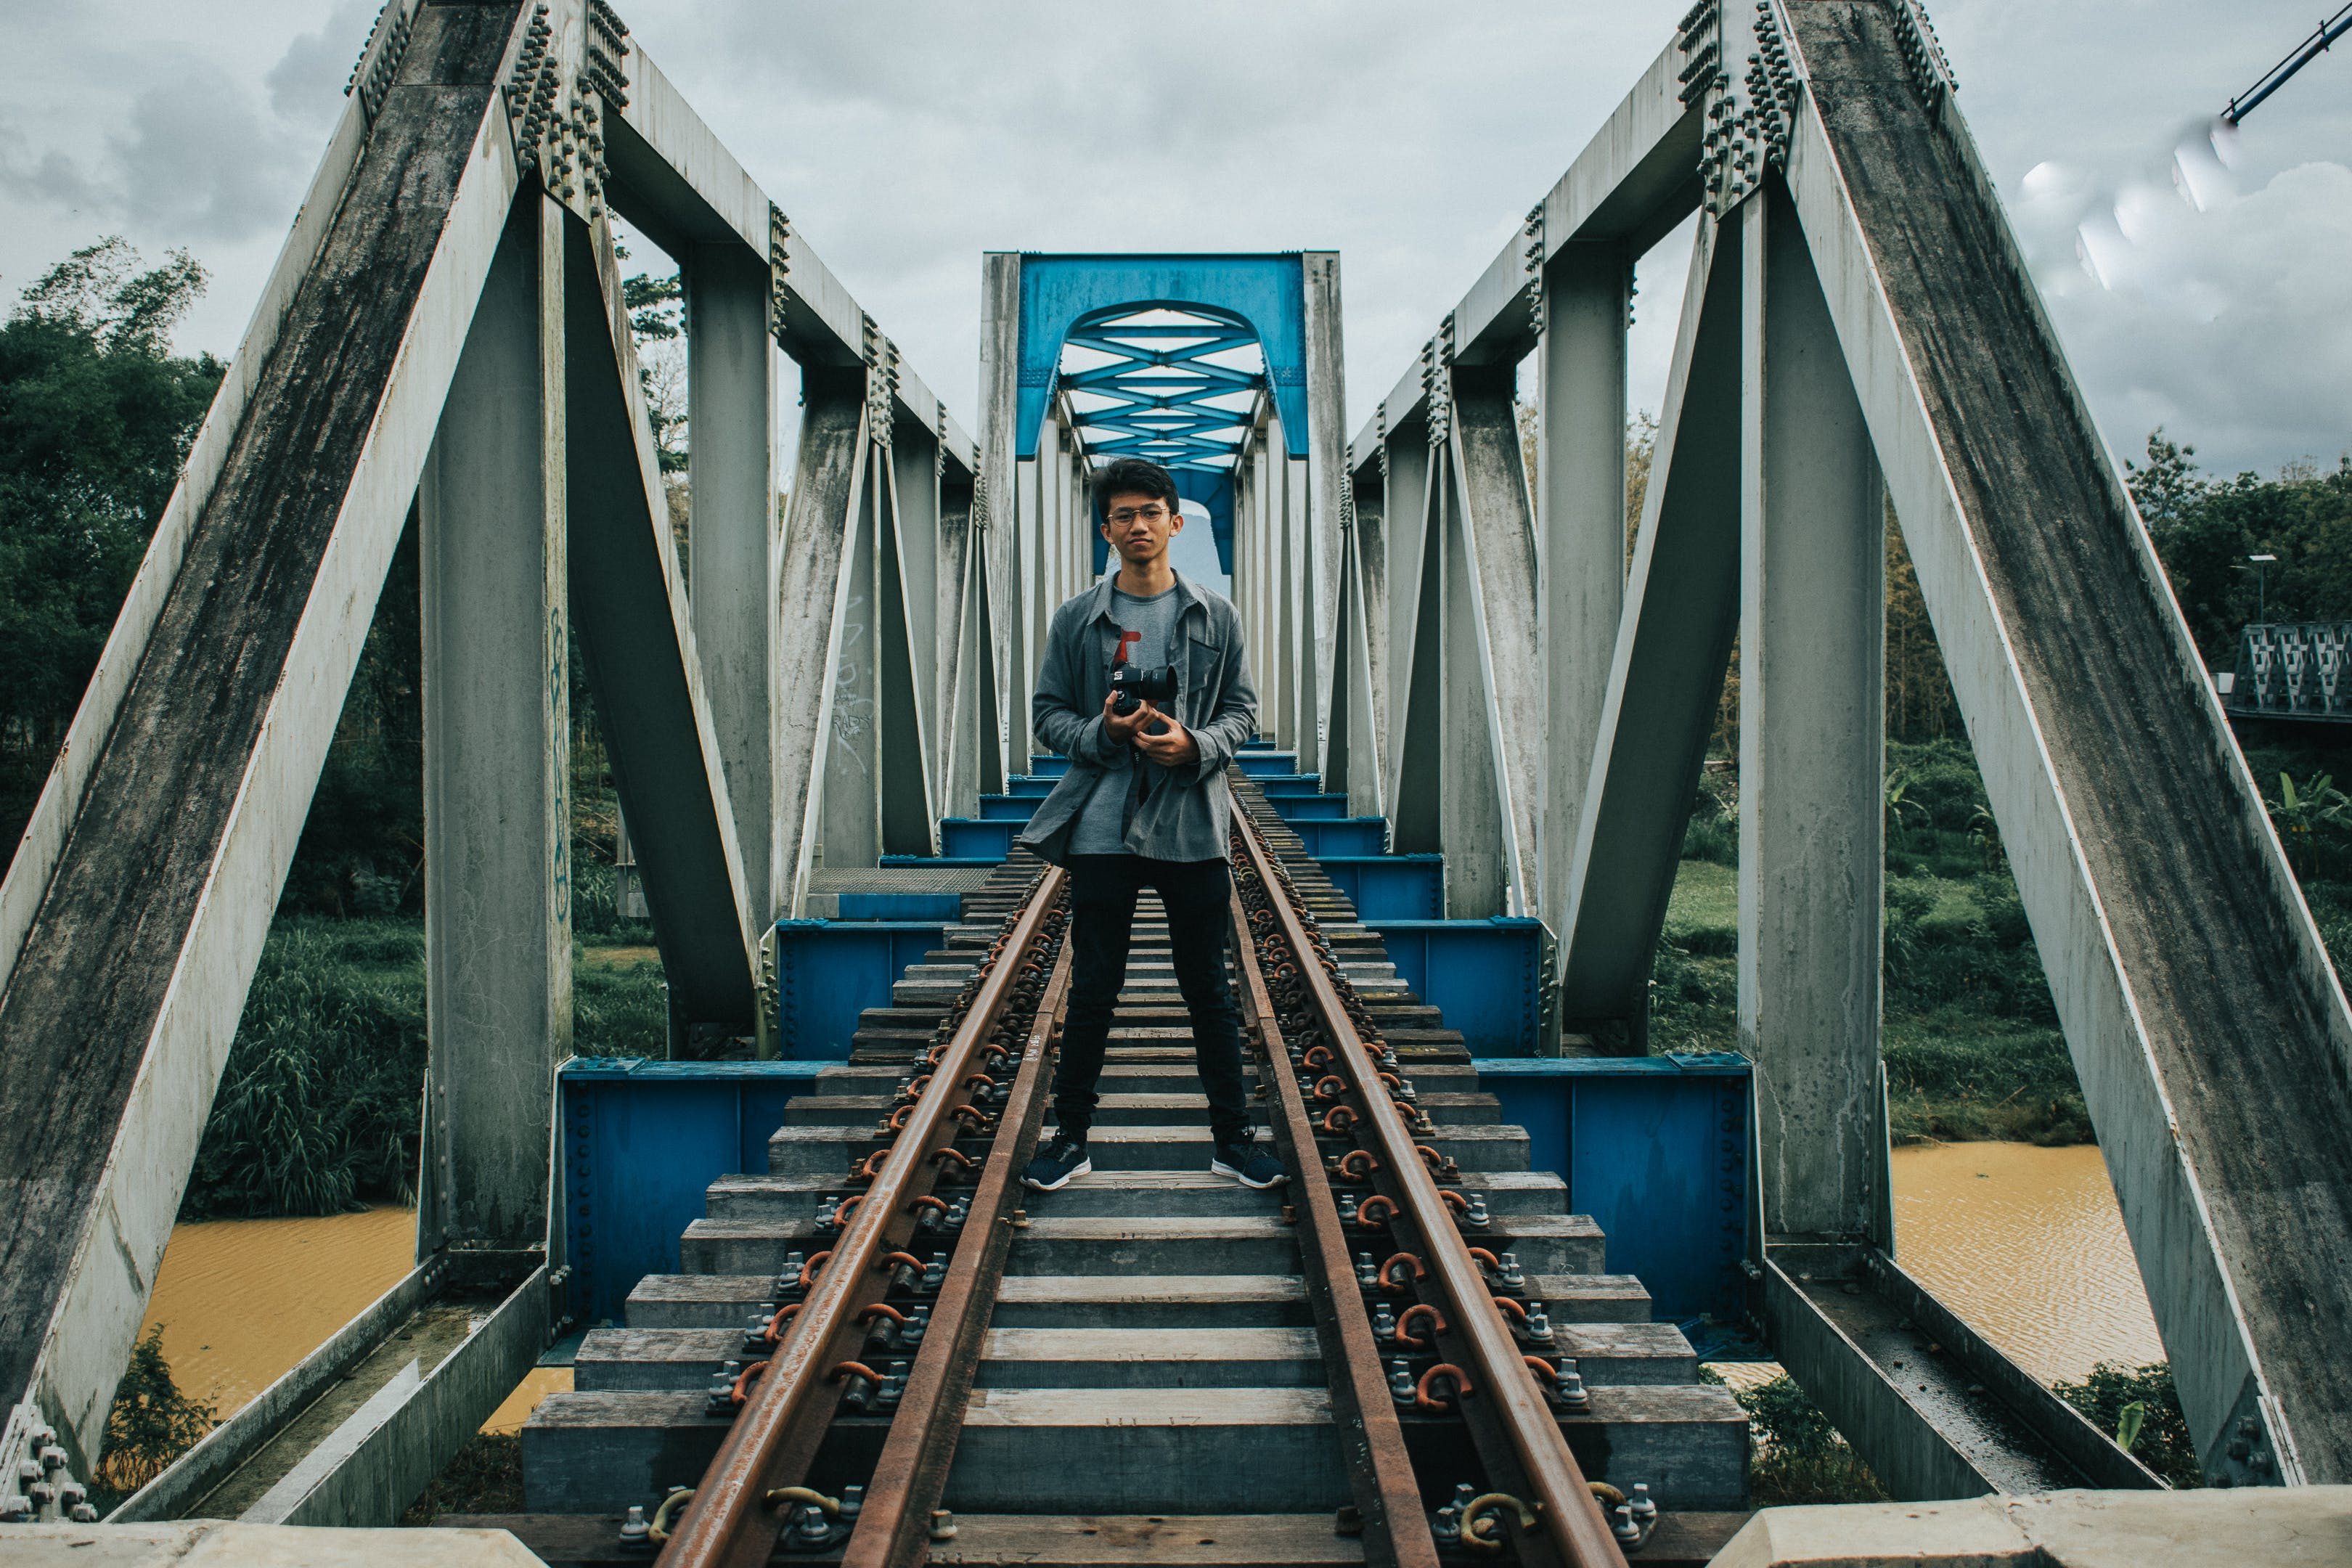 Man Standing on Train Tracks on Bridge Above Body of Water